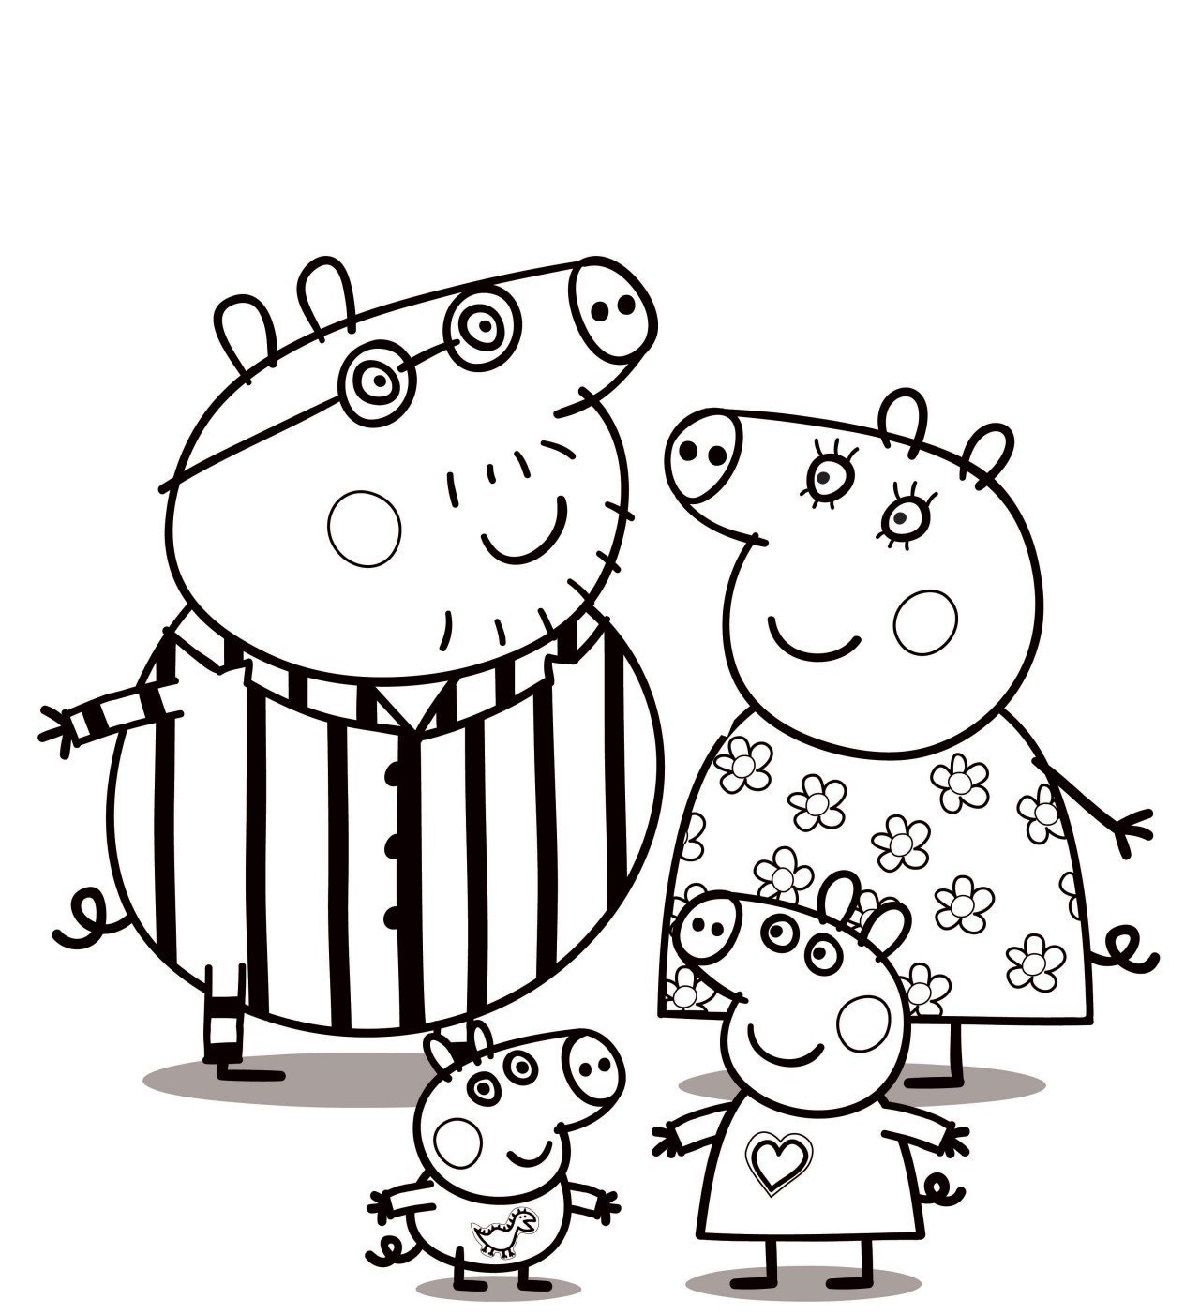 Give Your Favorite Peppa Pig Picture Some Color With Our Peppa Pig Coloring Pages Peppa Pig Coloring Pages Peppa Pig Colouring Christmas Present Coloring Pages